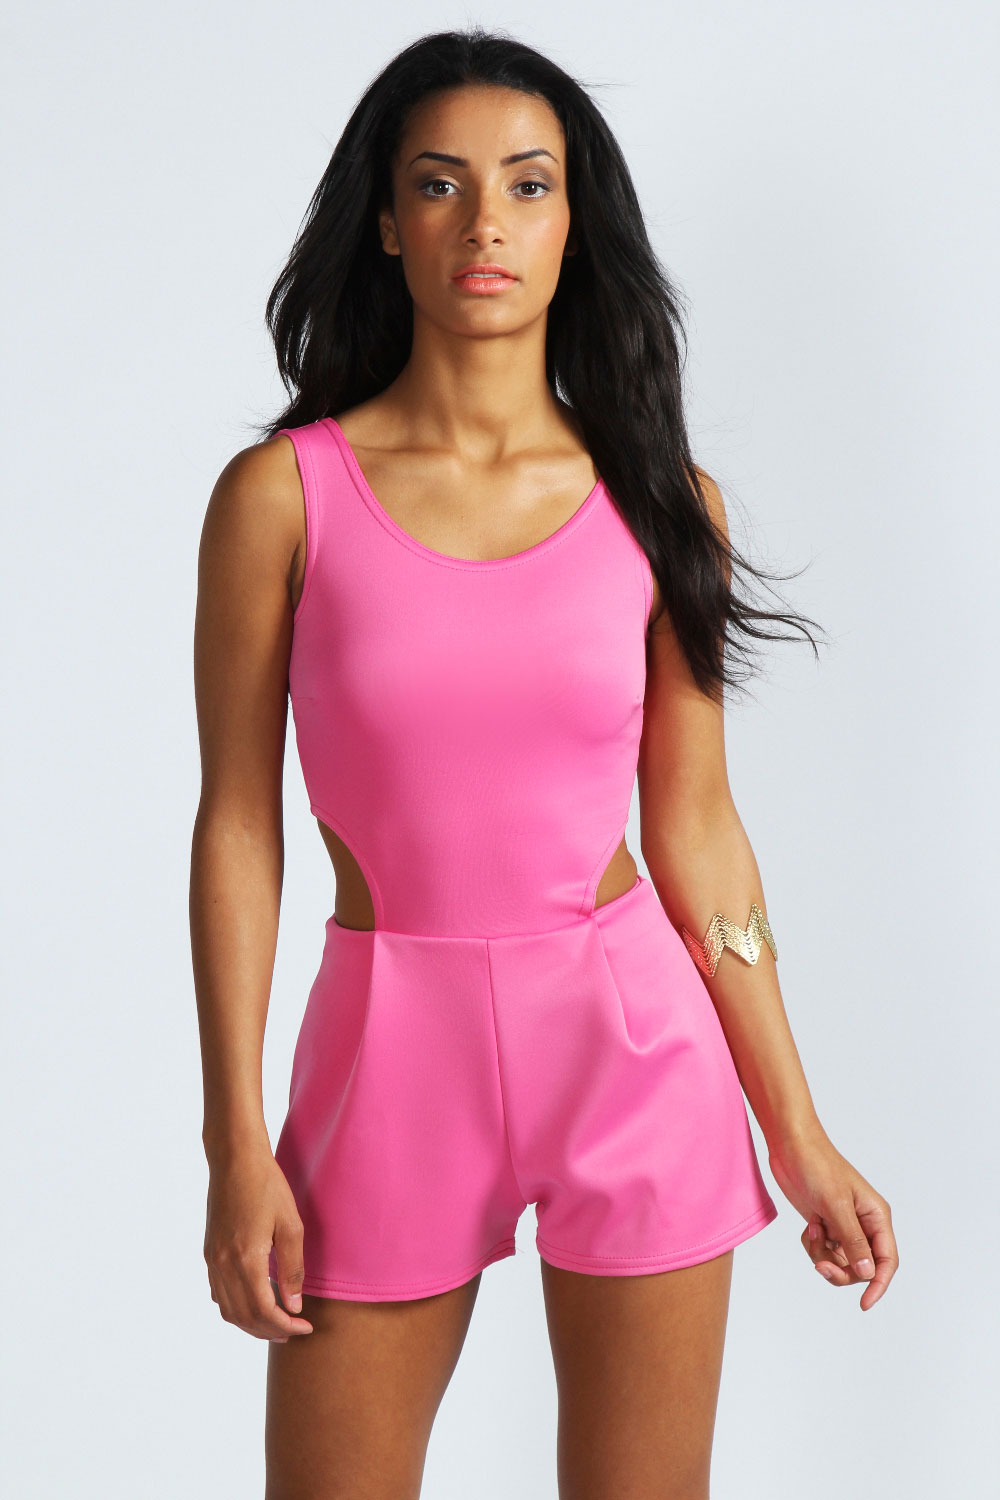 Boohoo Heather Sleeveless Cut Out Scuba Playsuit in Pink | eBay